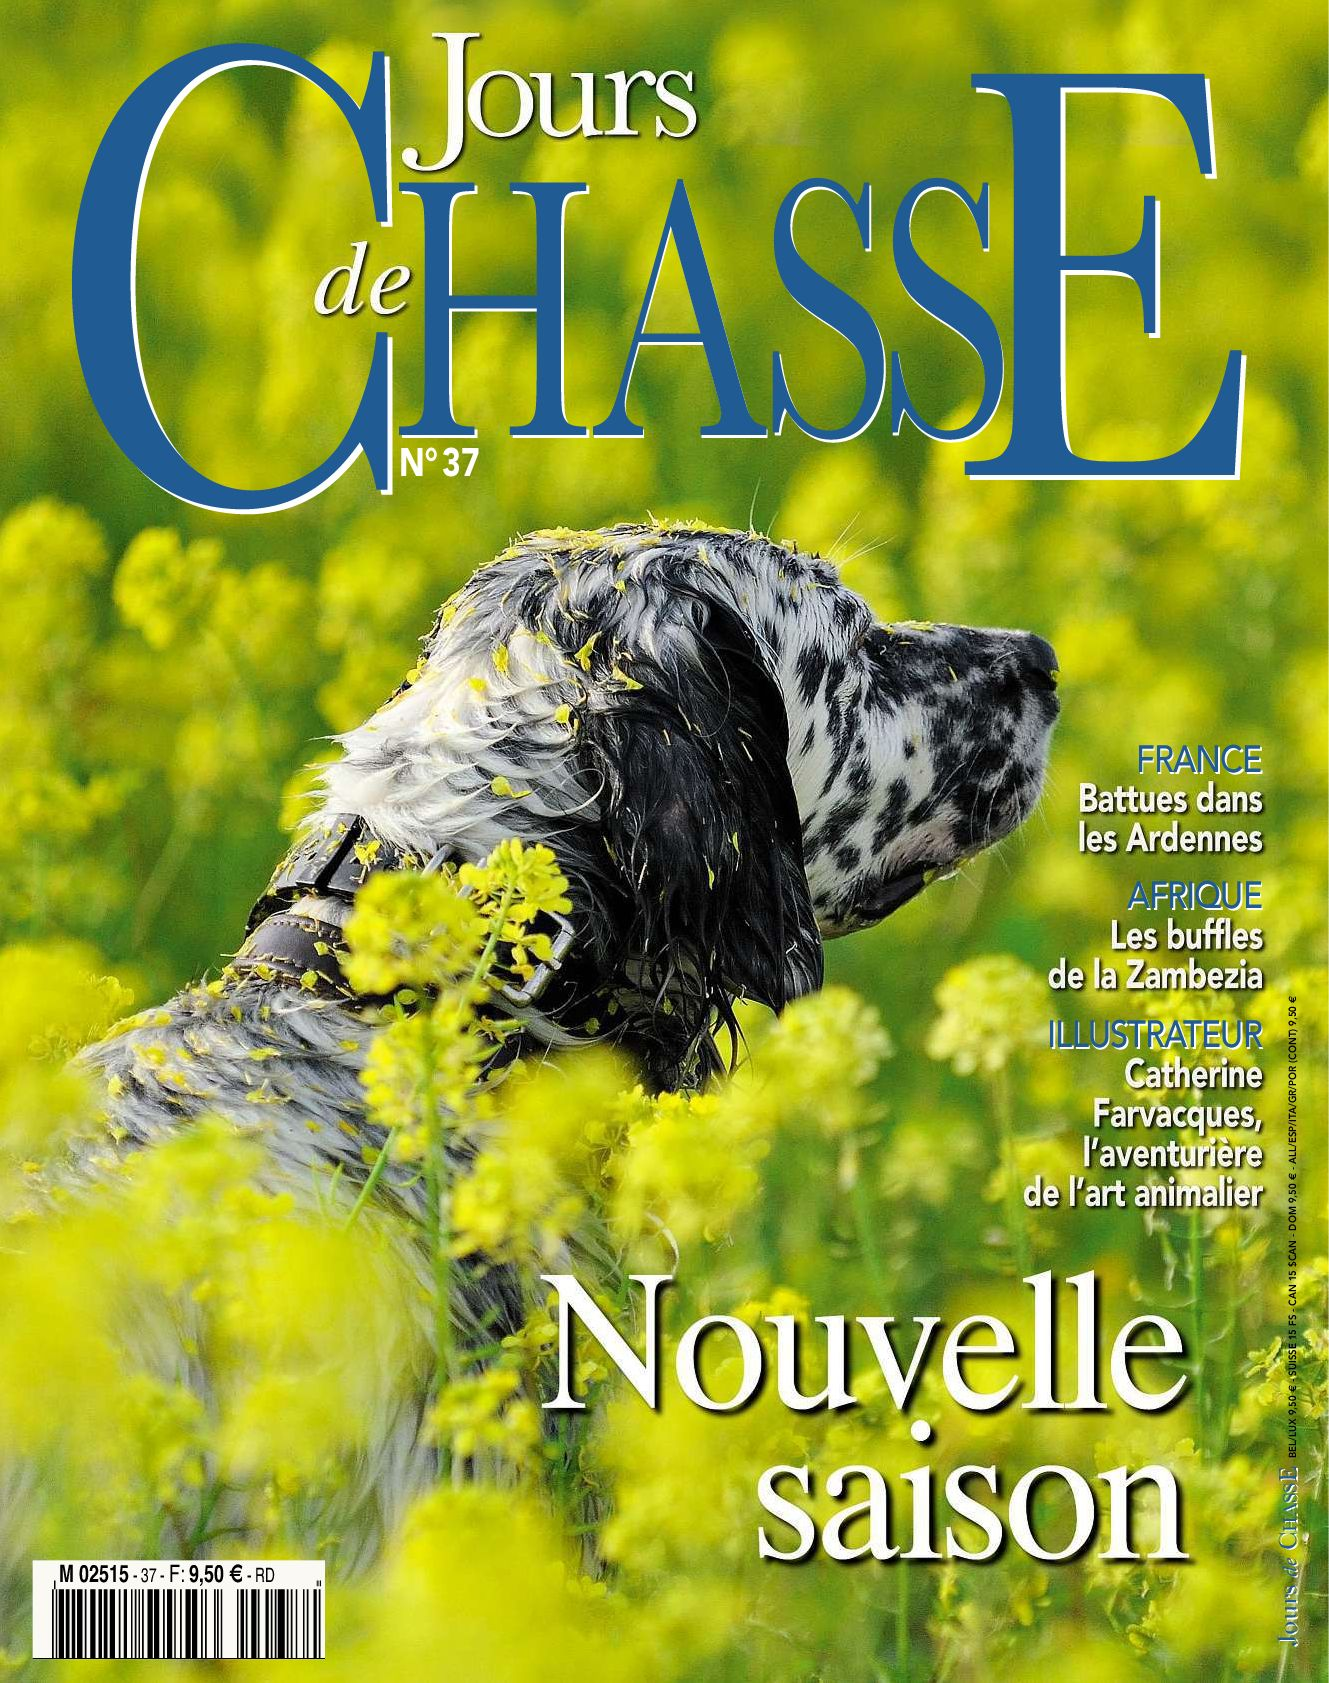 Jours de Chasse by Fred Pa issuu